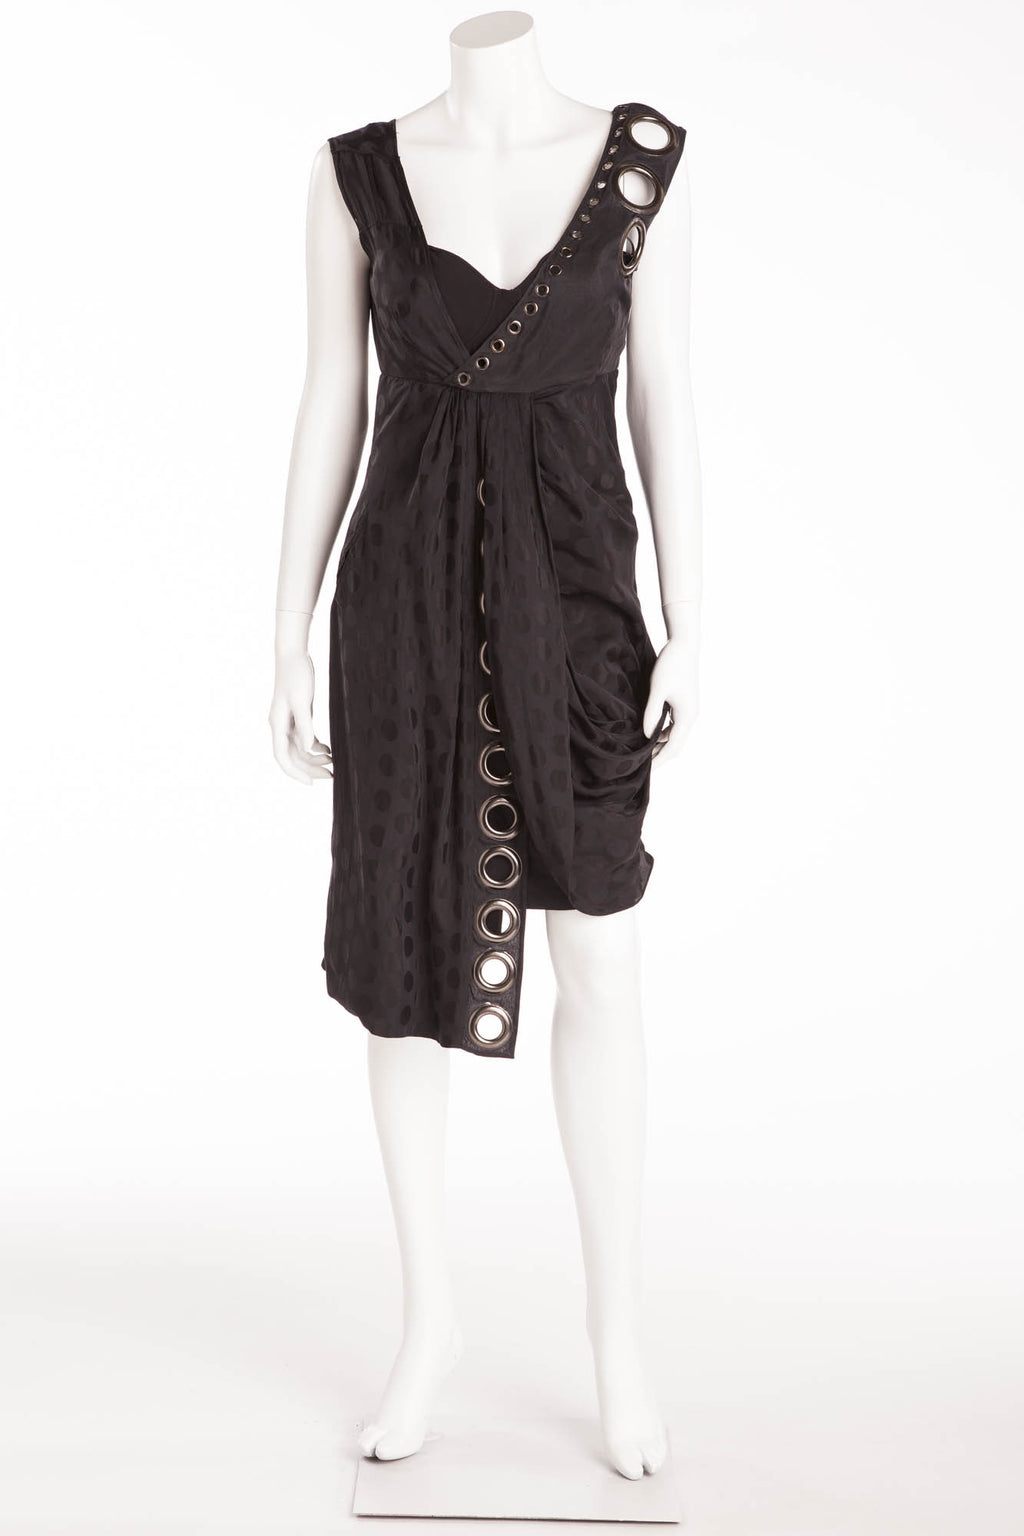 Givenchy - Black Sleeveless Draped Dress with Black Polka Dots and Metal Embellishments - FR 36